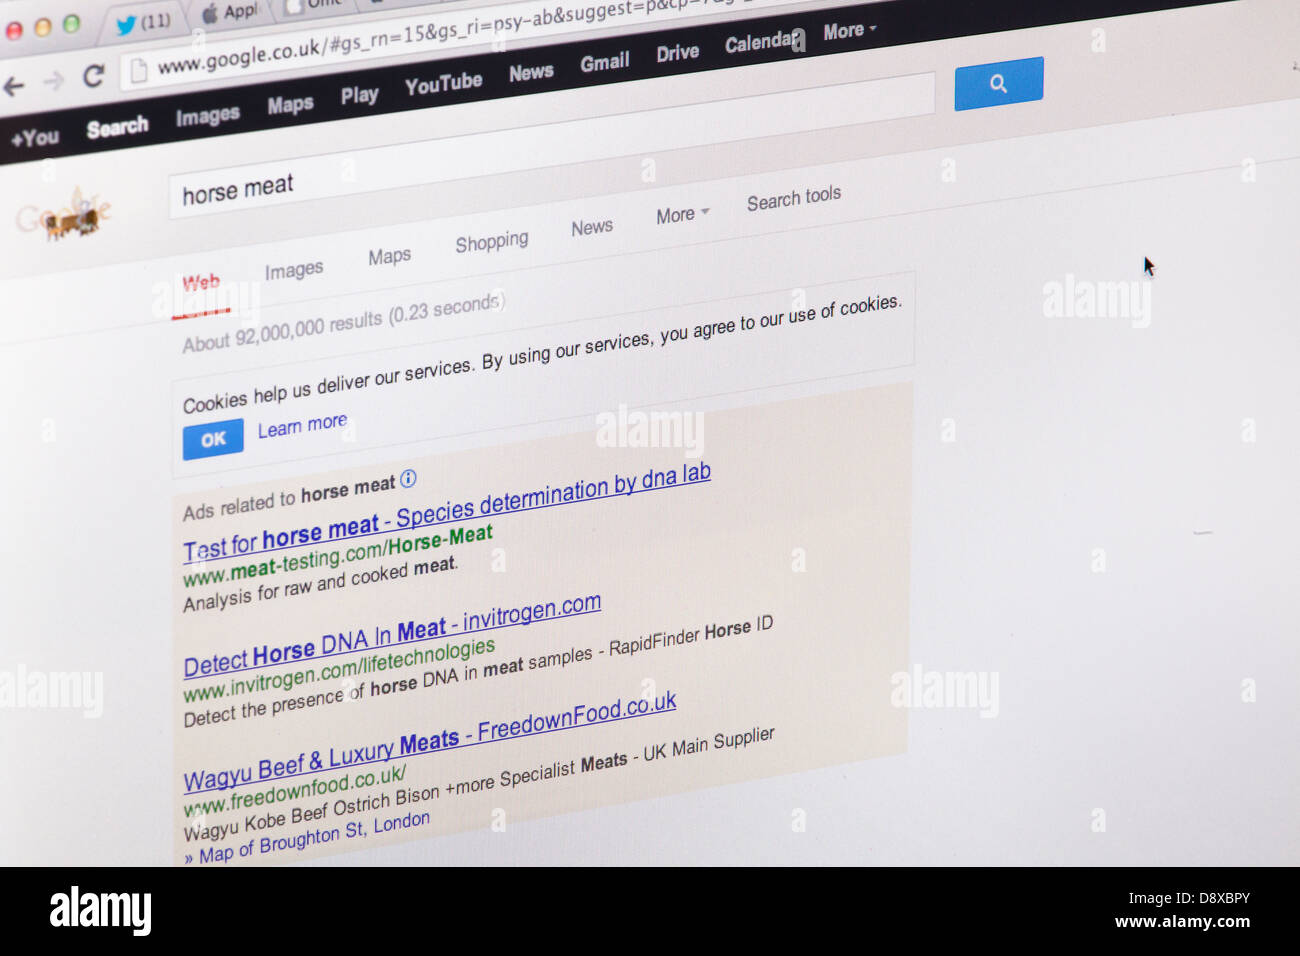 The horse meat scandal search results in Google - Website or web page on a laptop screen or computer monitor - Stock Image